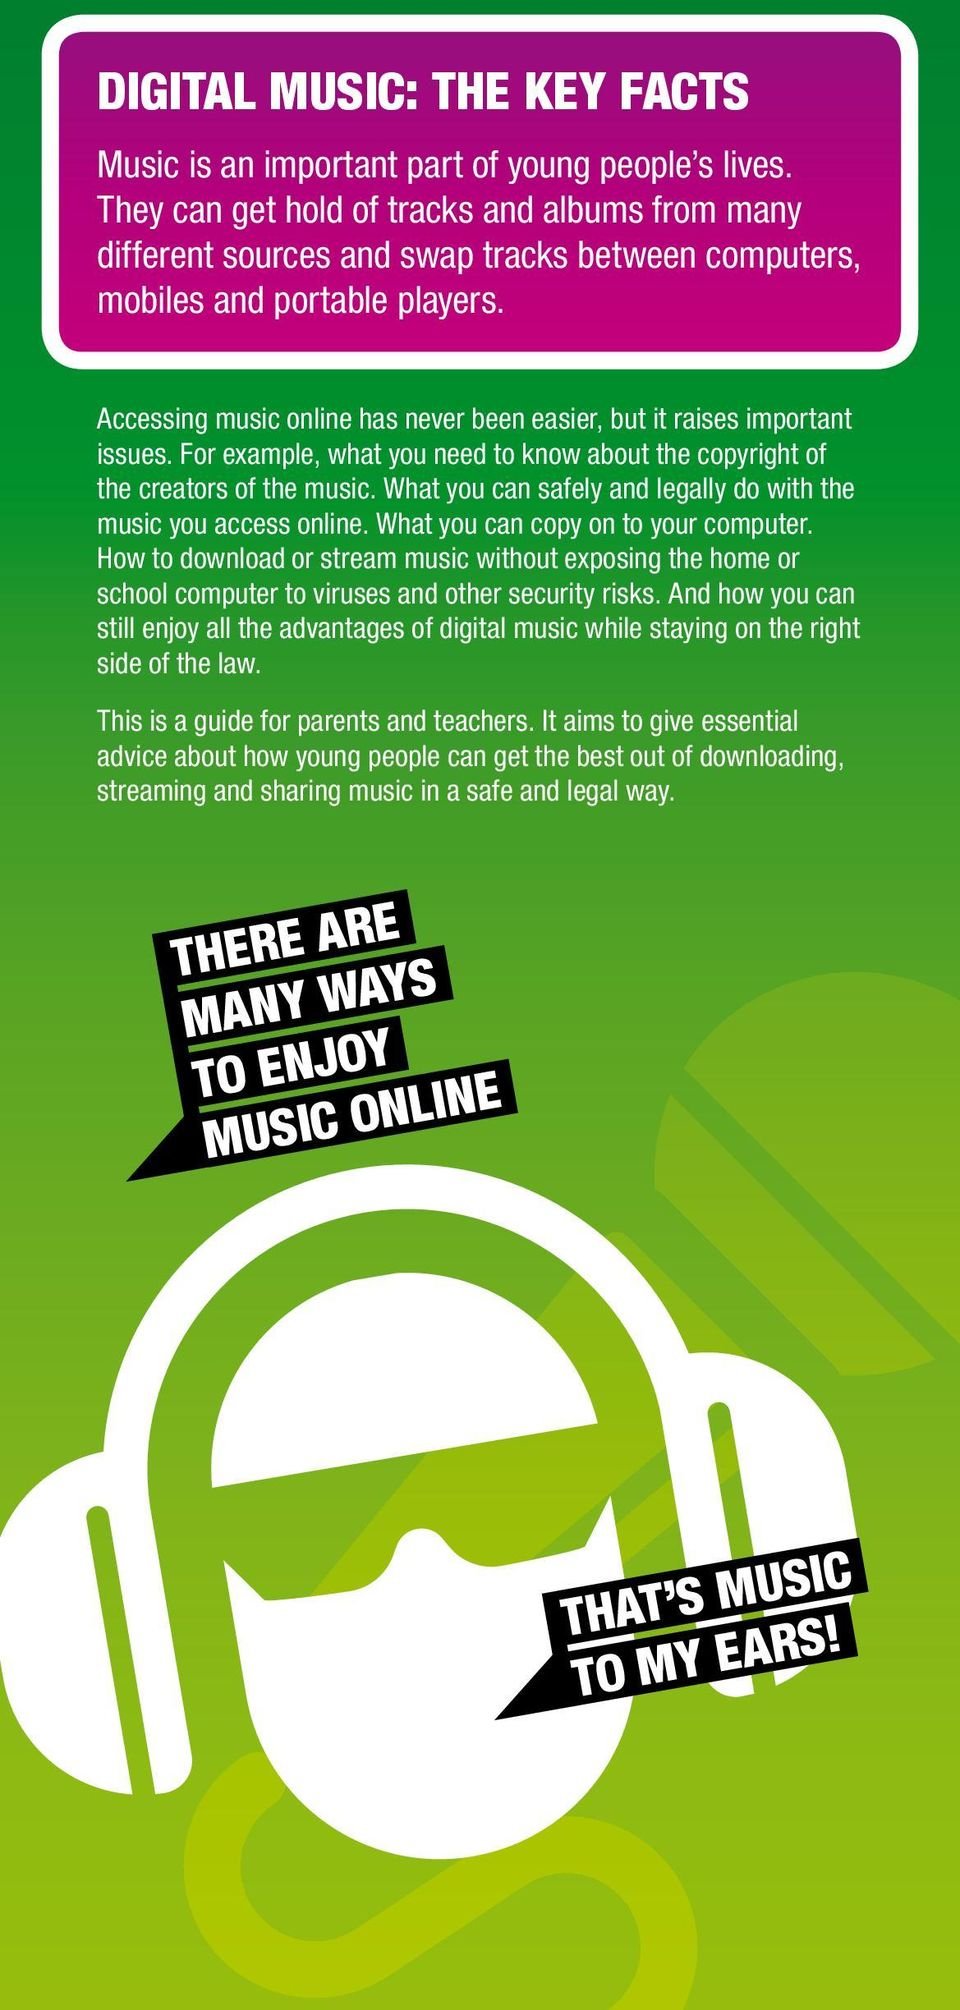 Accessing music online has never been easier, but it raises important issues. For example, what you need to know about the copyright of the creators of the music.